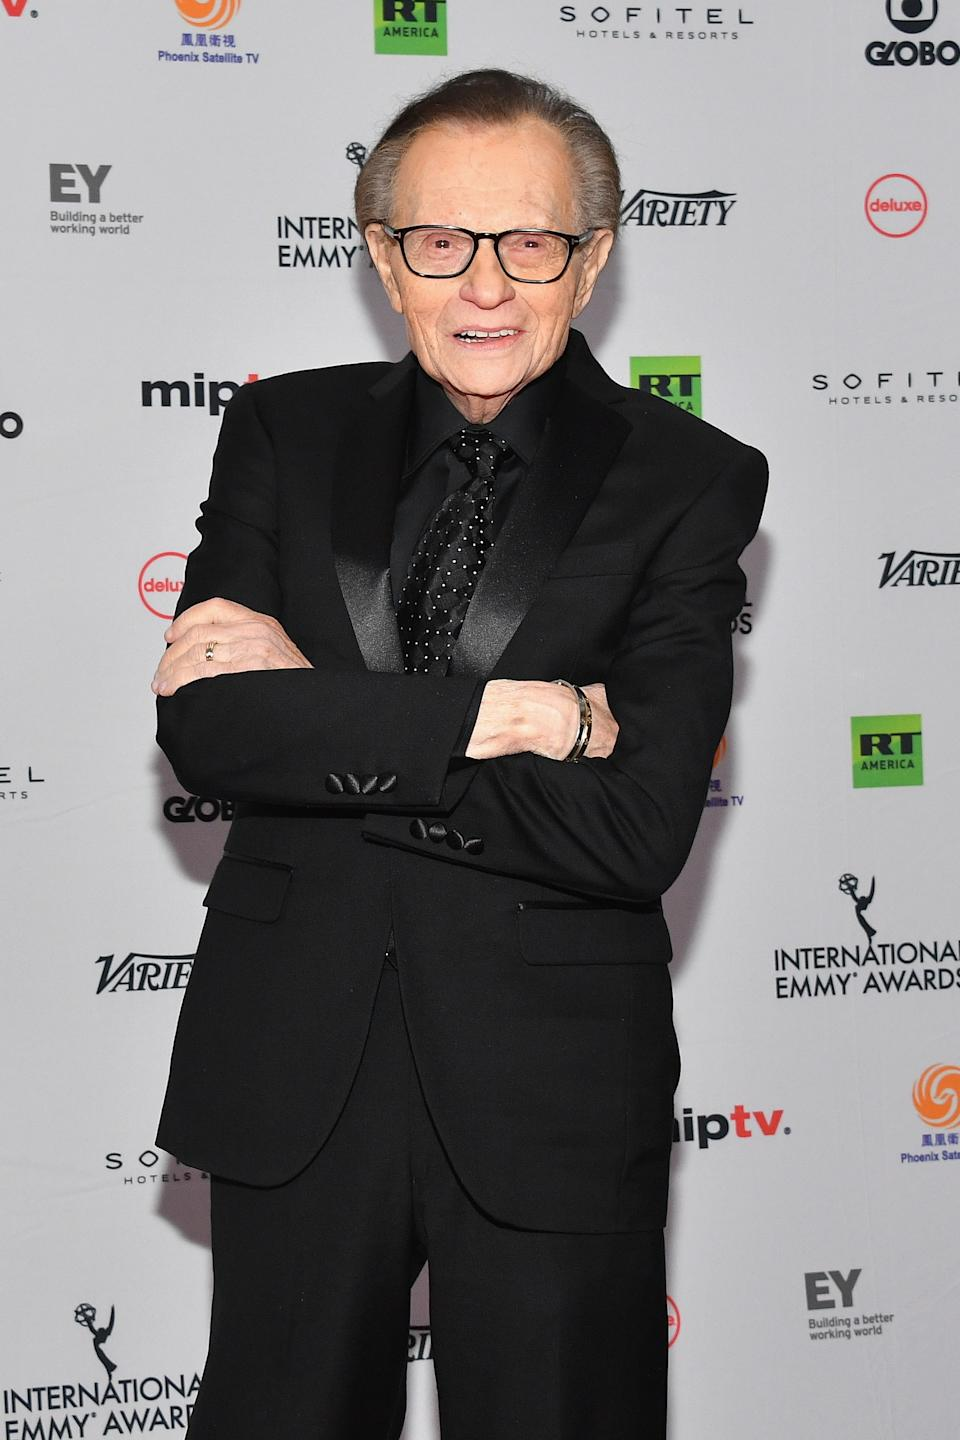 Larry King poses in black suit on red carpet